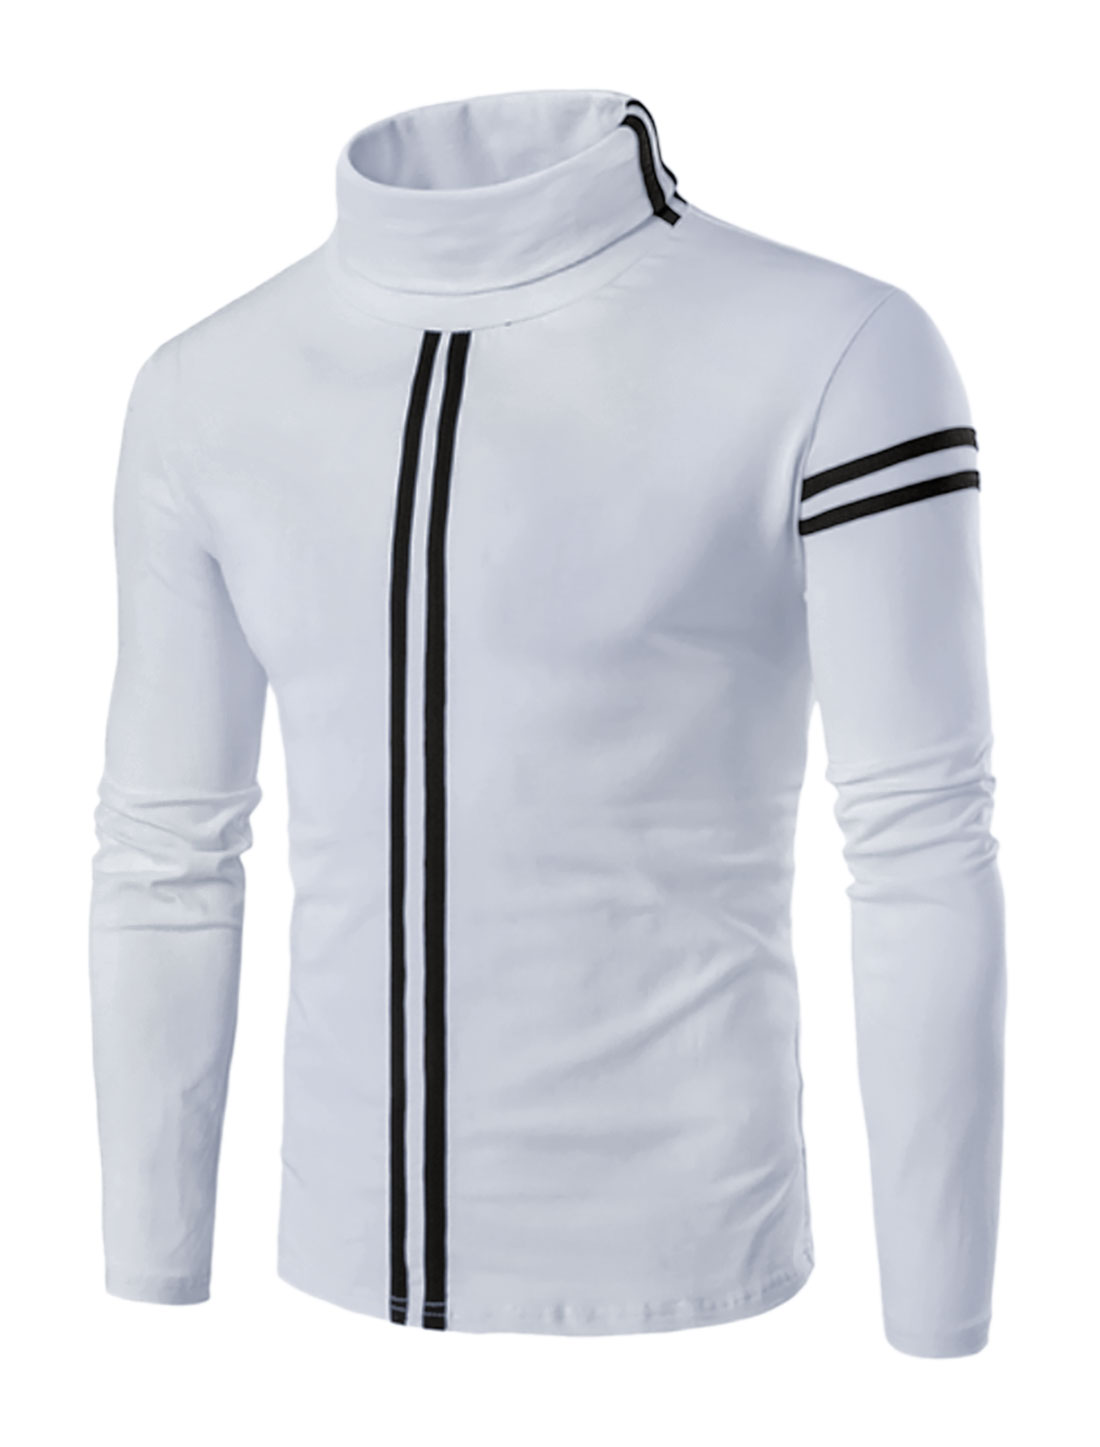 Men Turtle Neck Long Sleeves Stripes Slim Fit T-shirt White L